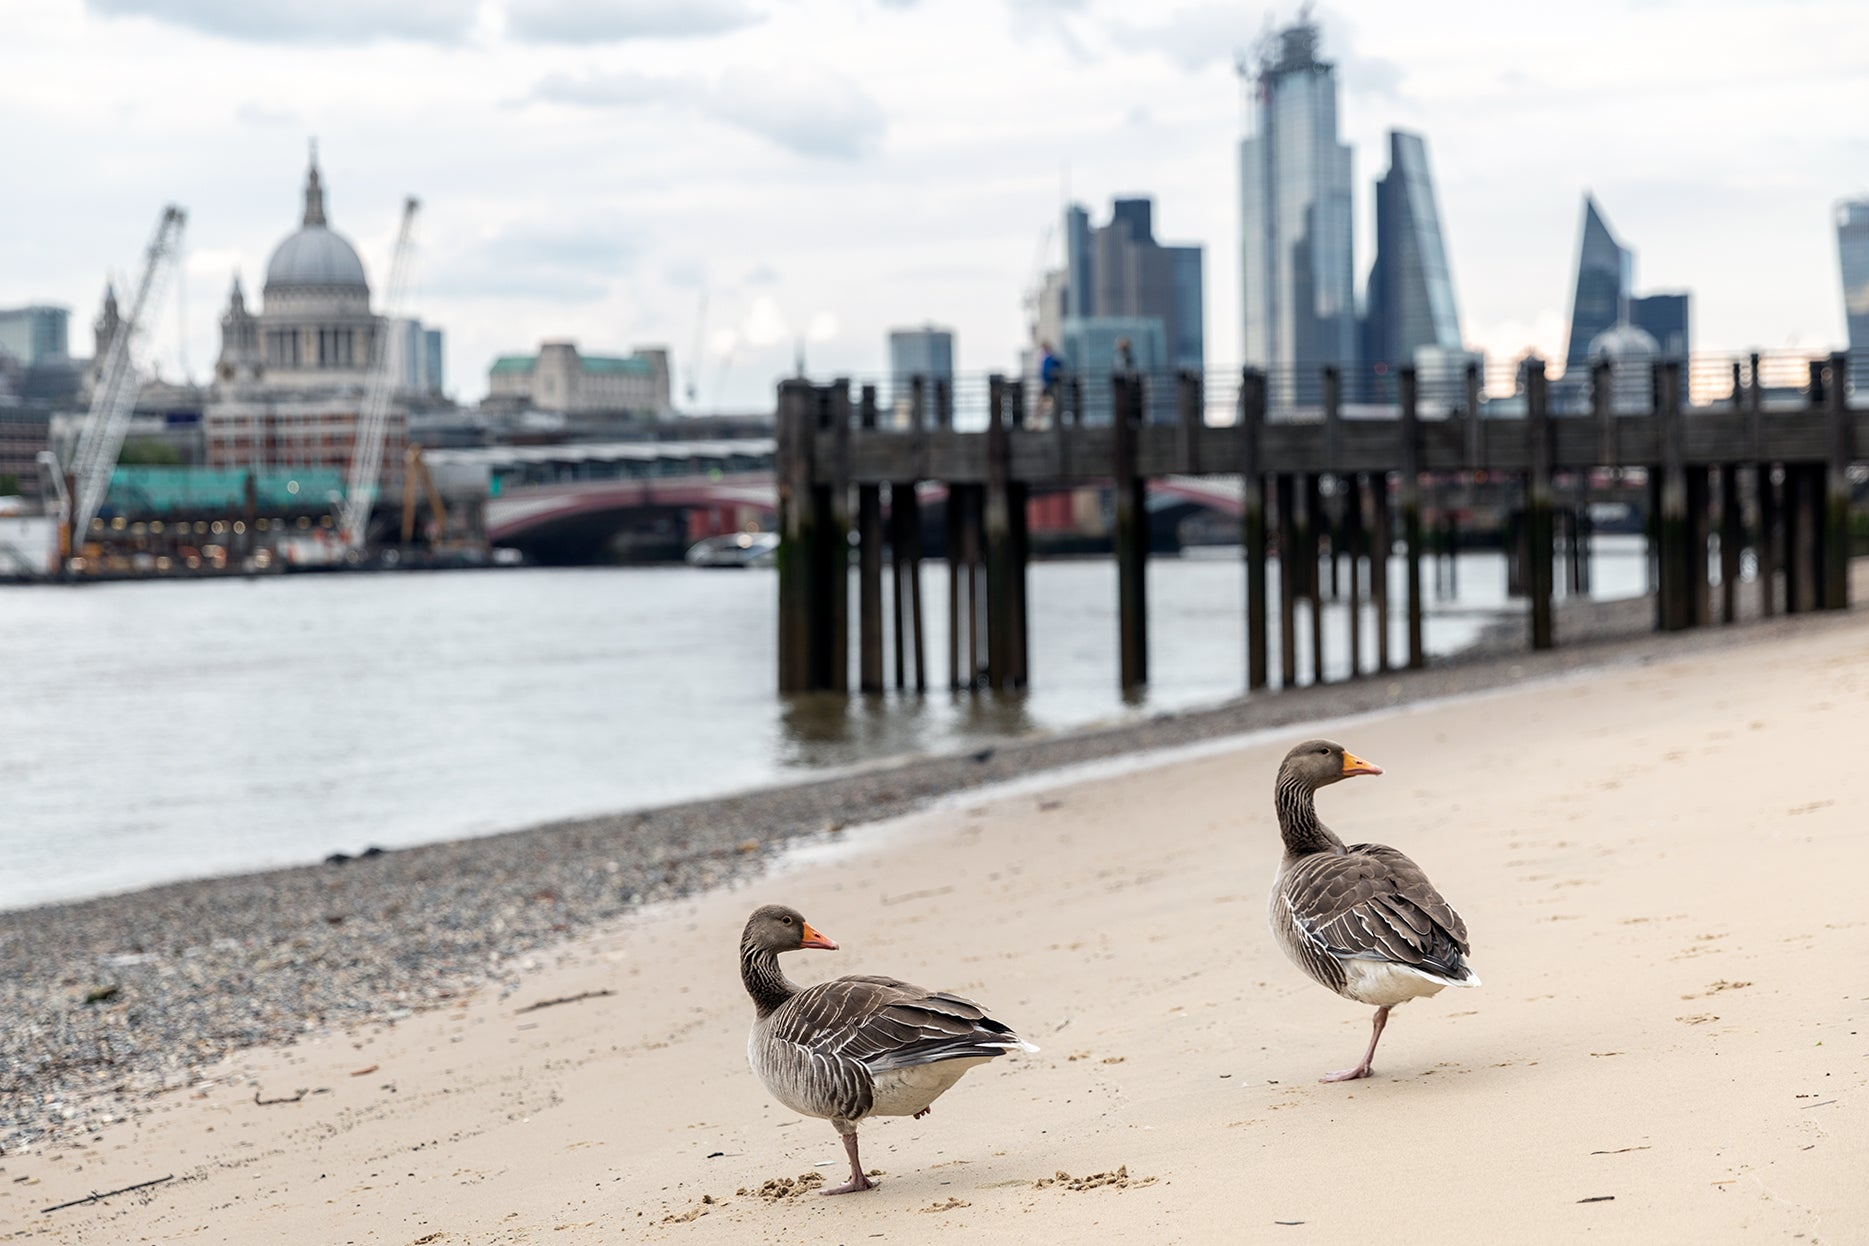 Greylag Goose by the City of London